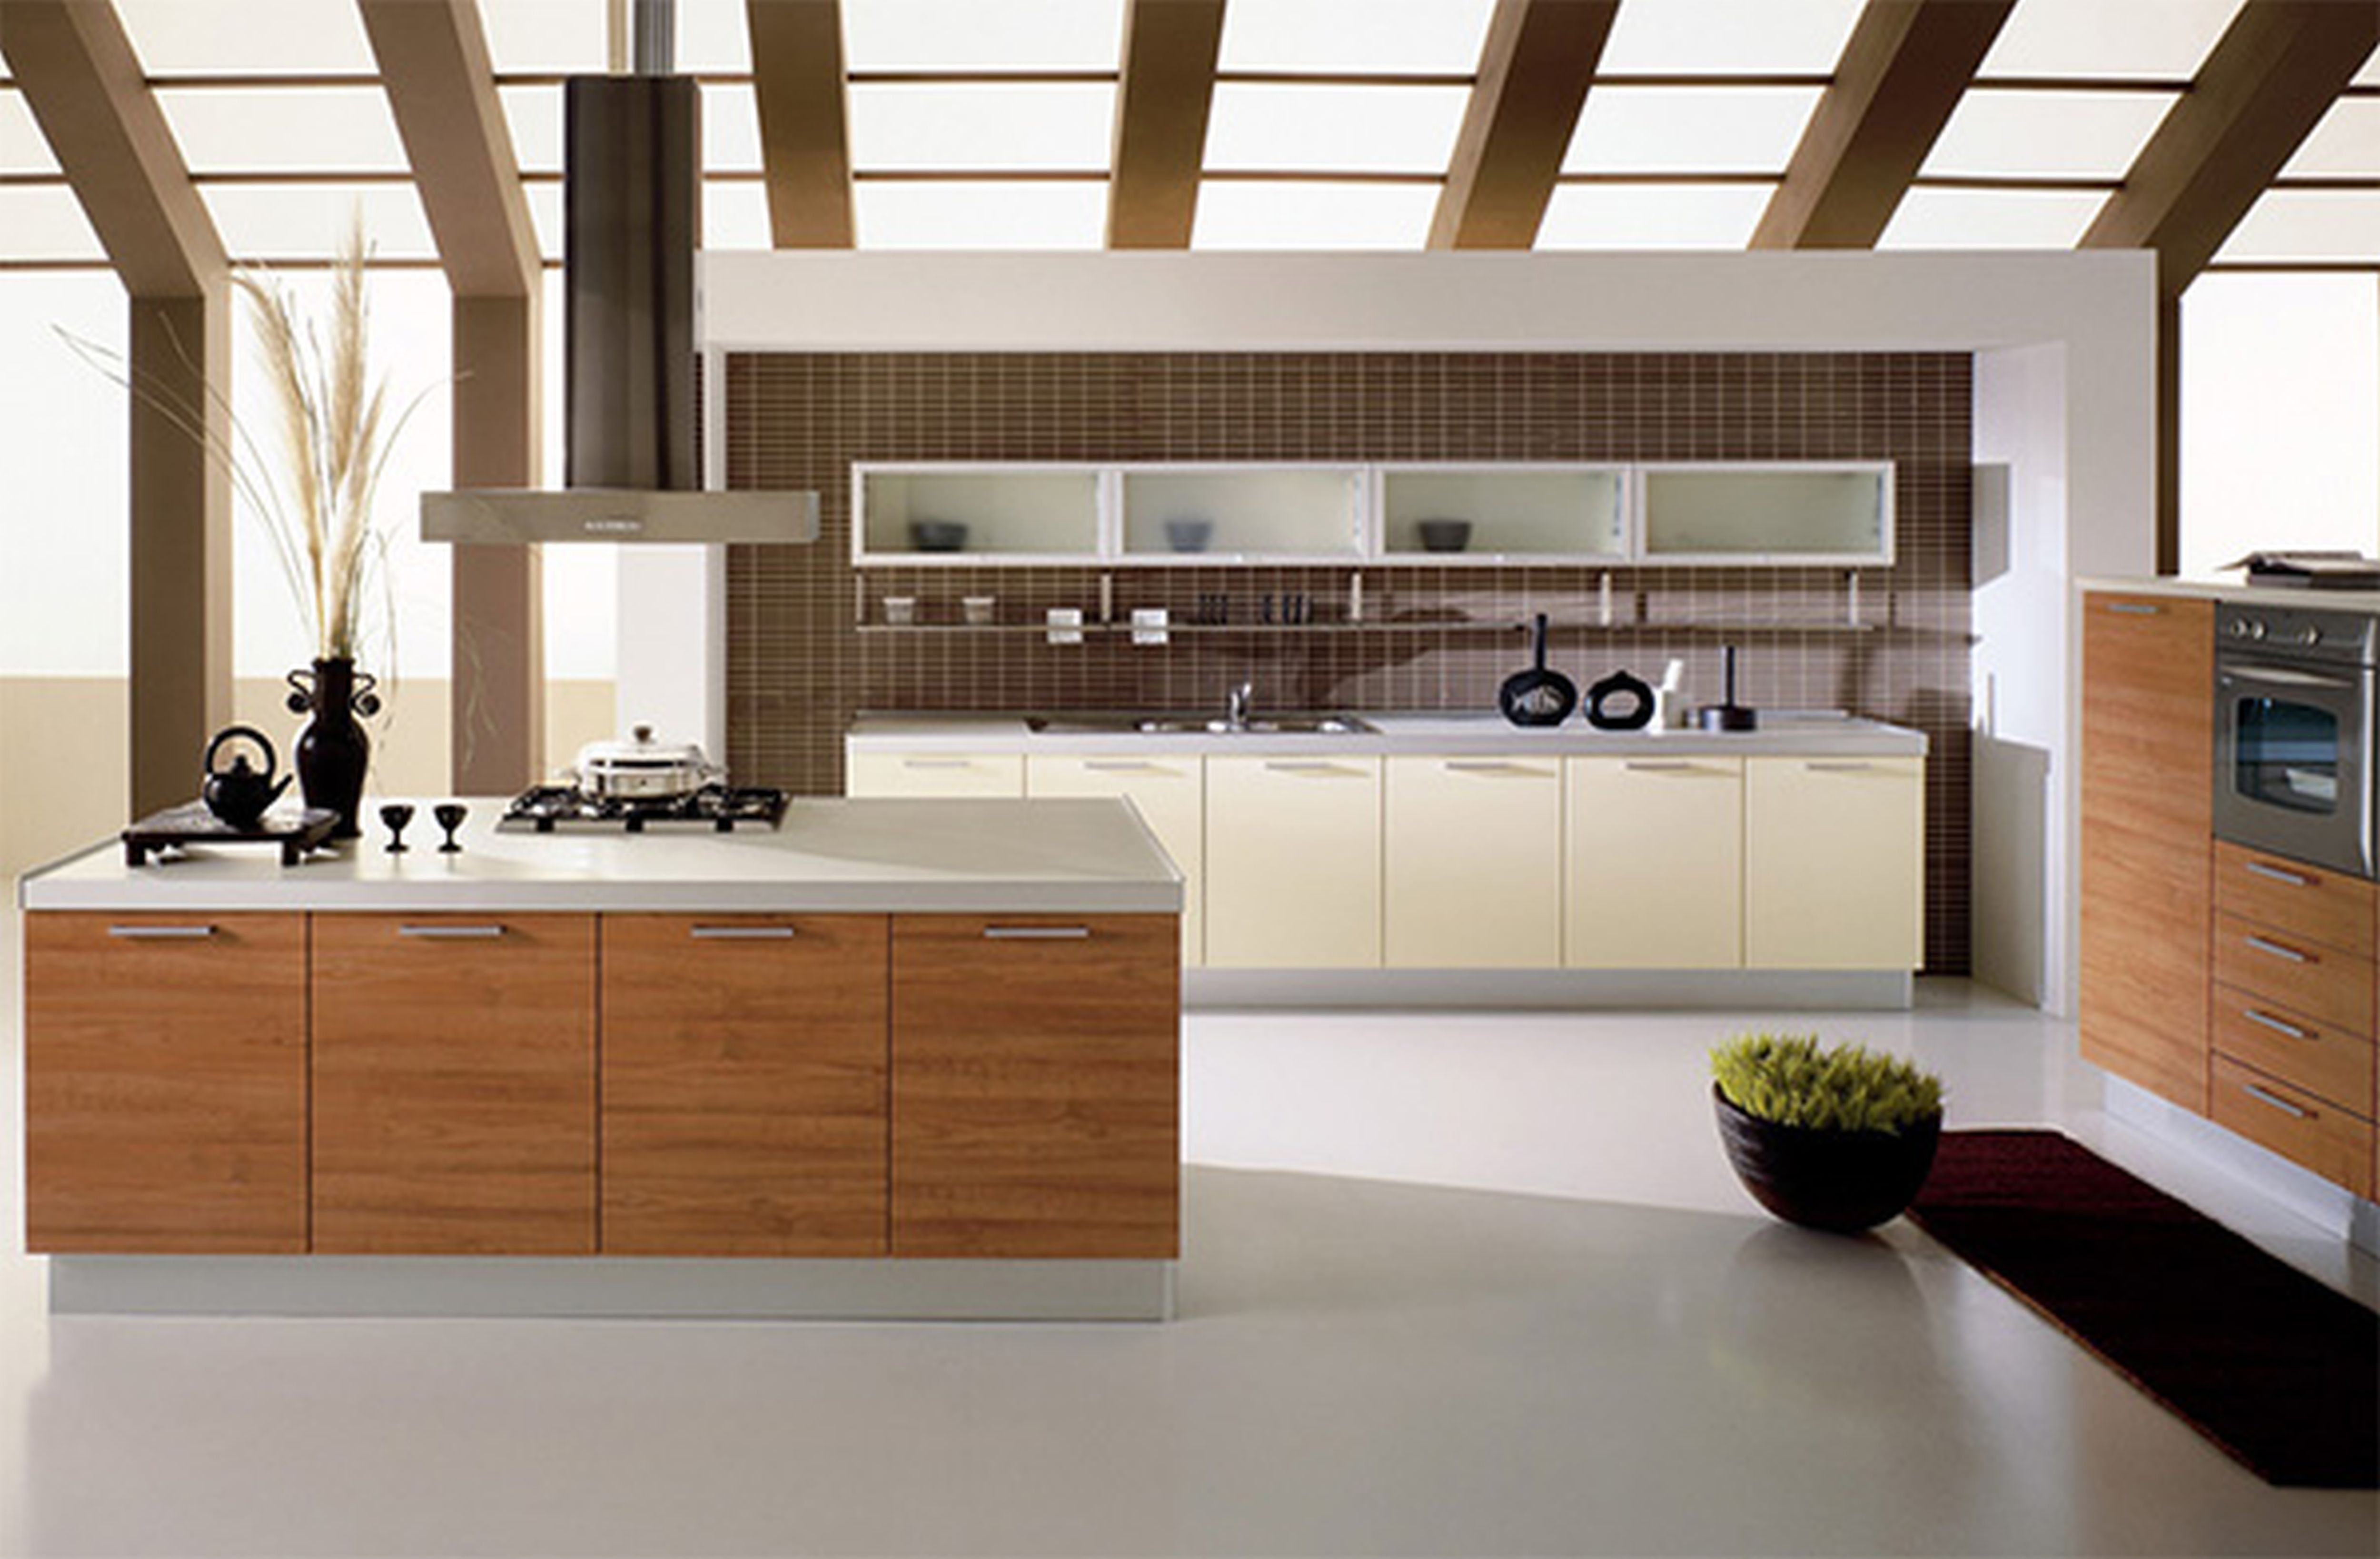 Furniture kitchen exquisite beautiful contemporary kitchen Modern kitchen design ideas